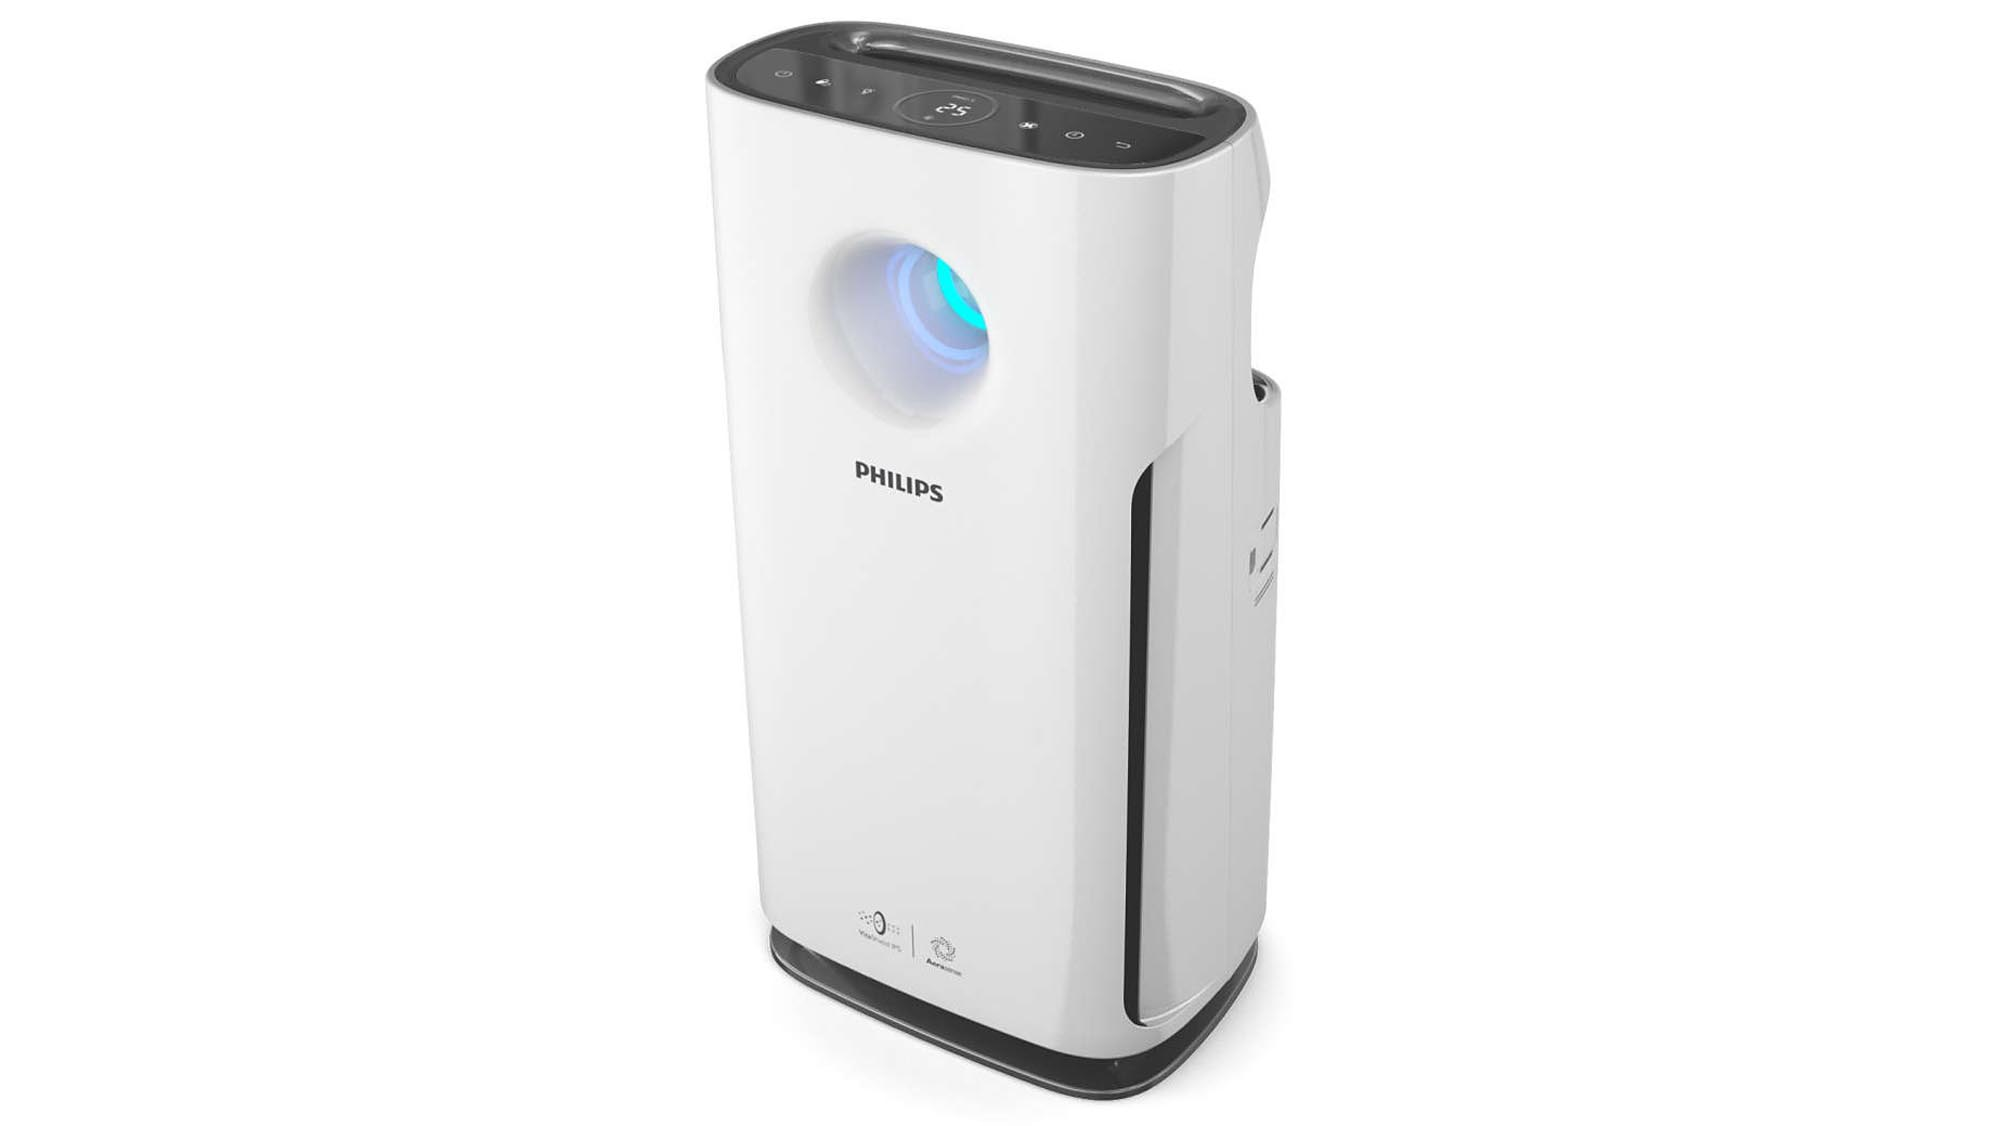 The Philips AC3256 is a fairly hefty investment  but it provides  exceptional air purification  removing pollen  dust and smoke from the air  at a rate that. Best air purifier  Ease your allergies with the best air purifiers